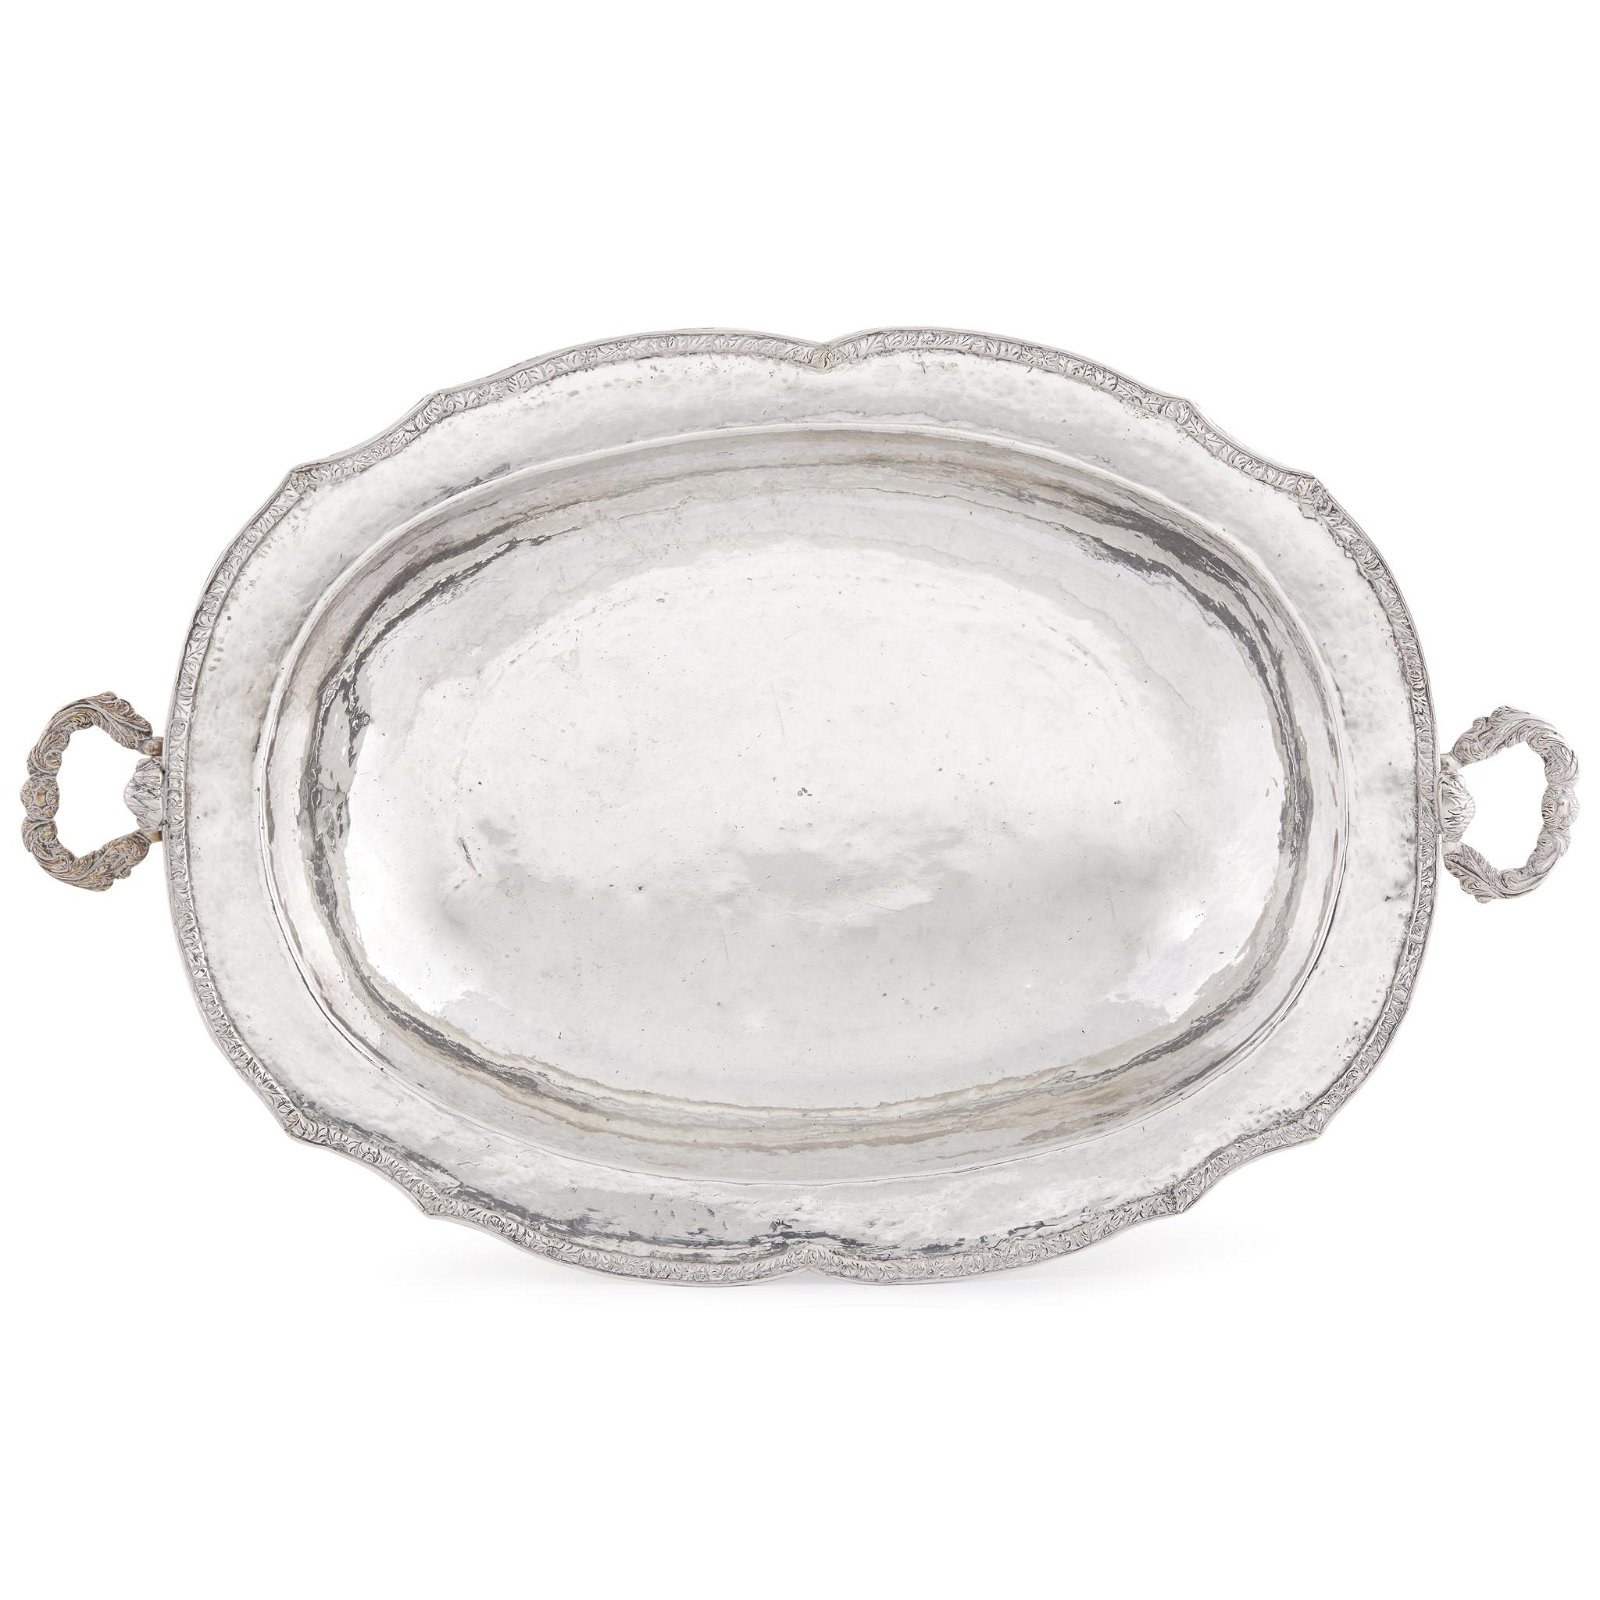 Spanish Colonial silver oblong serving dish, South